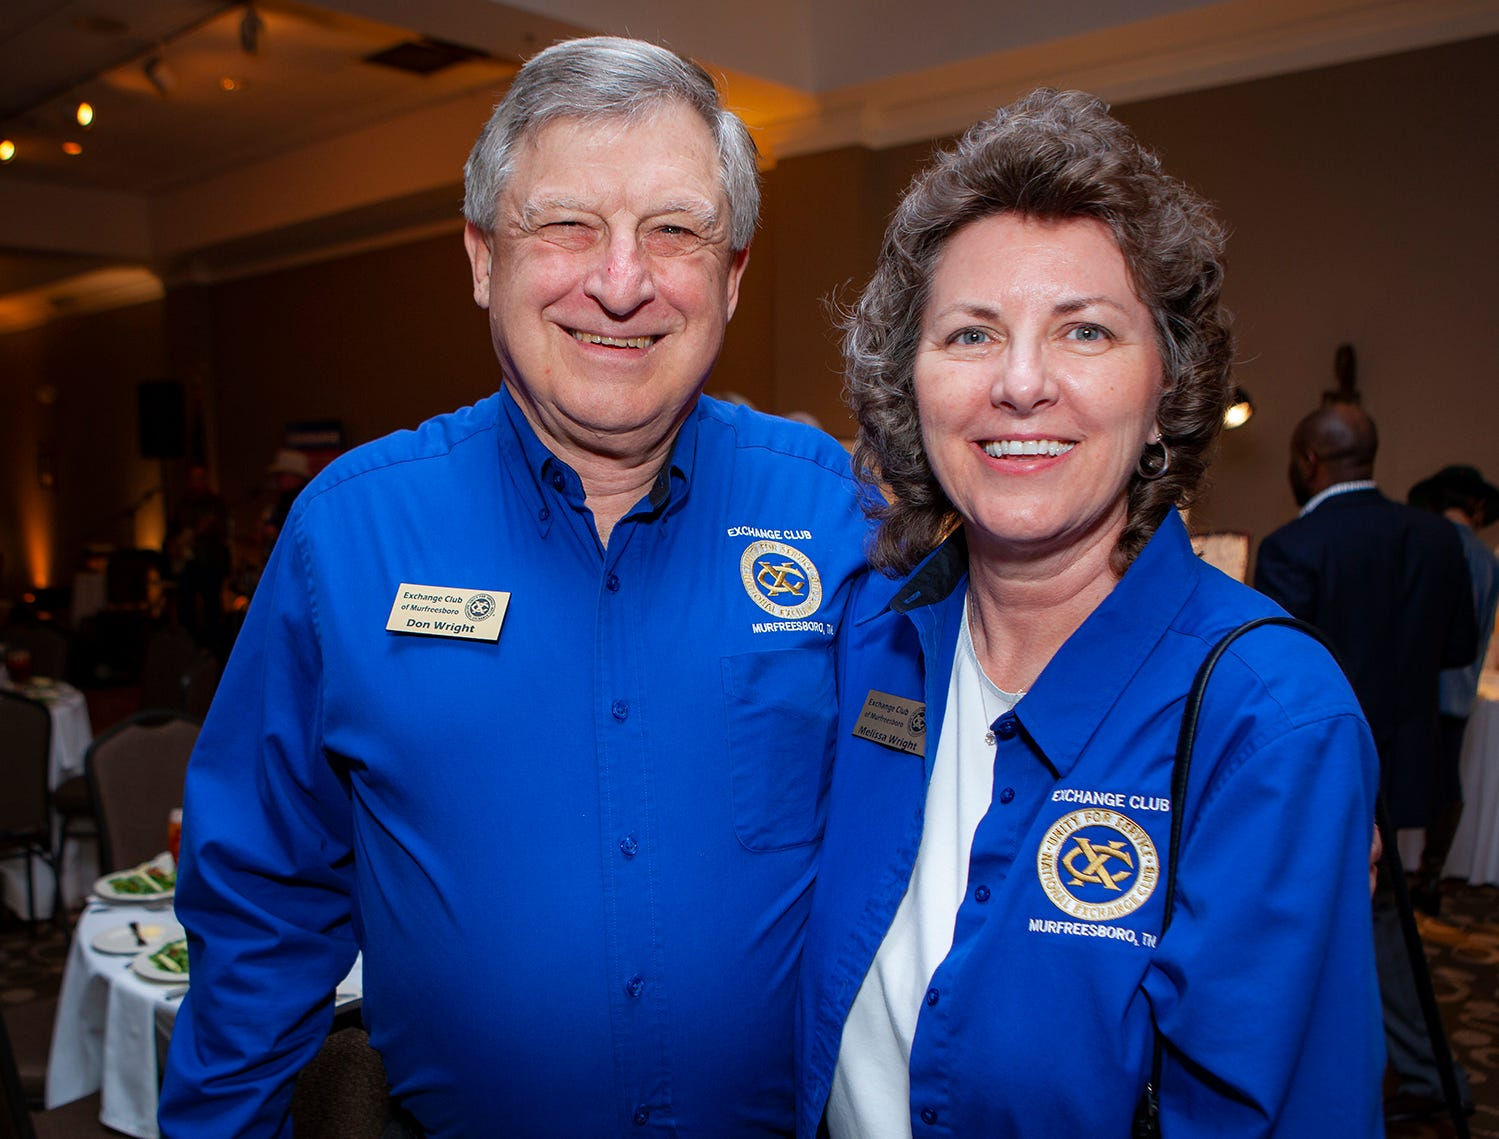 Don and Melissa Wright at the Exchange Club Celebrity Waiter lunch.